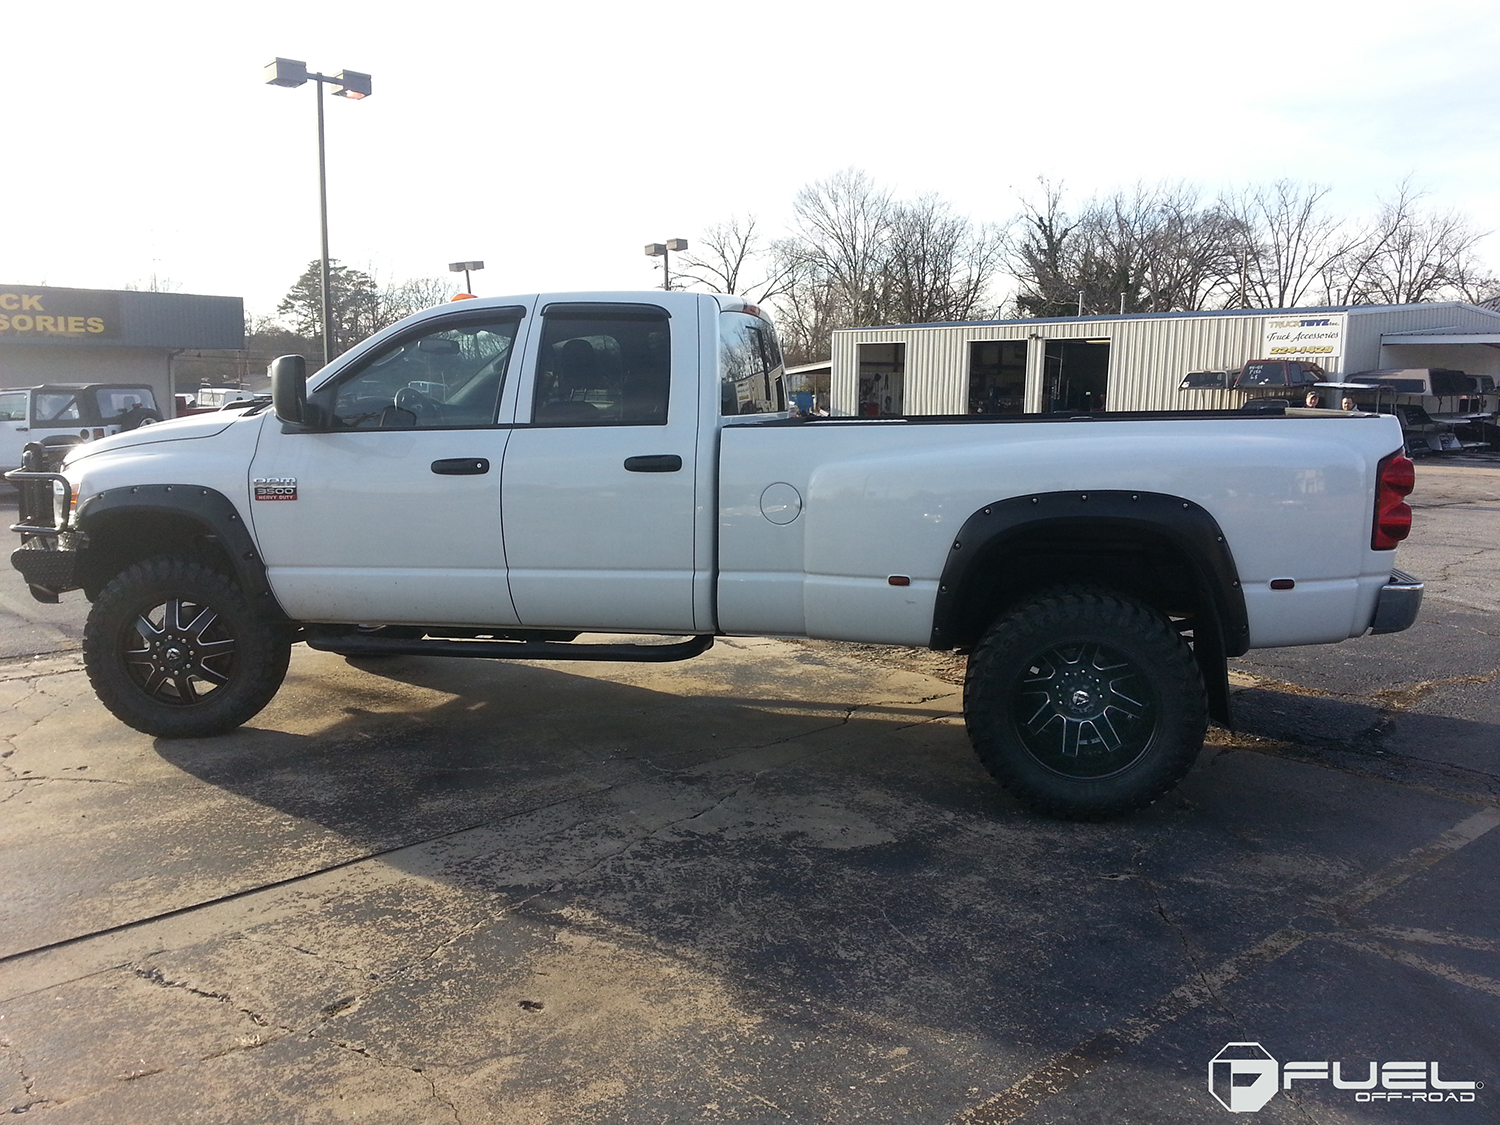 car dodge ram 3500 on fuel dually maverick dually rear. Black Bedroom Furniture Sets. Home Design Ideas